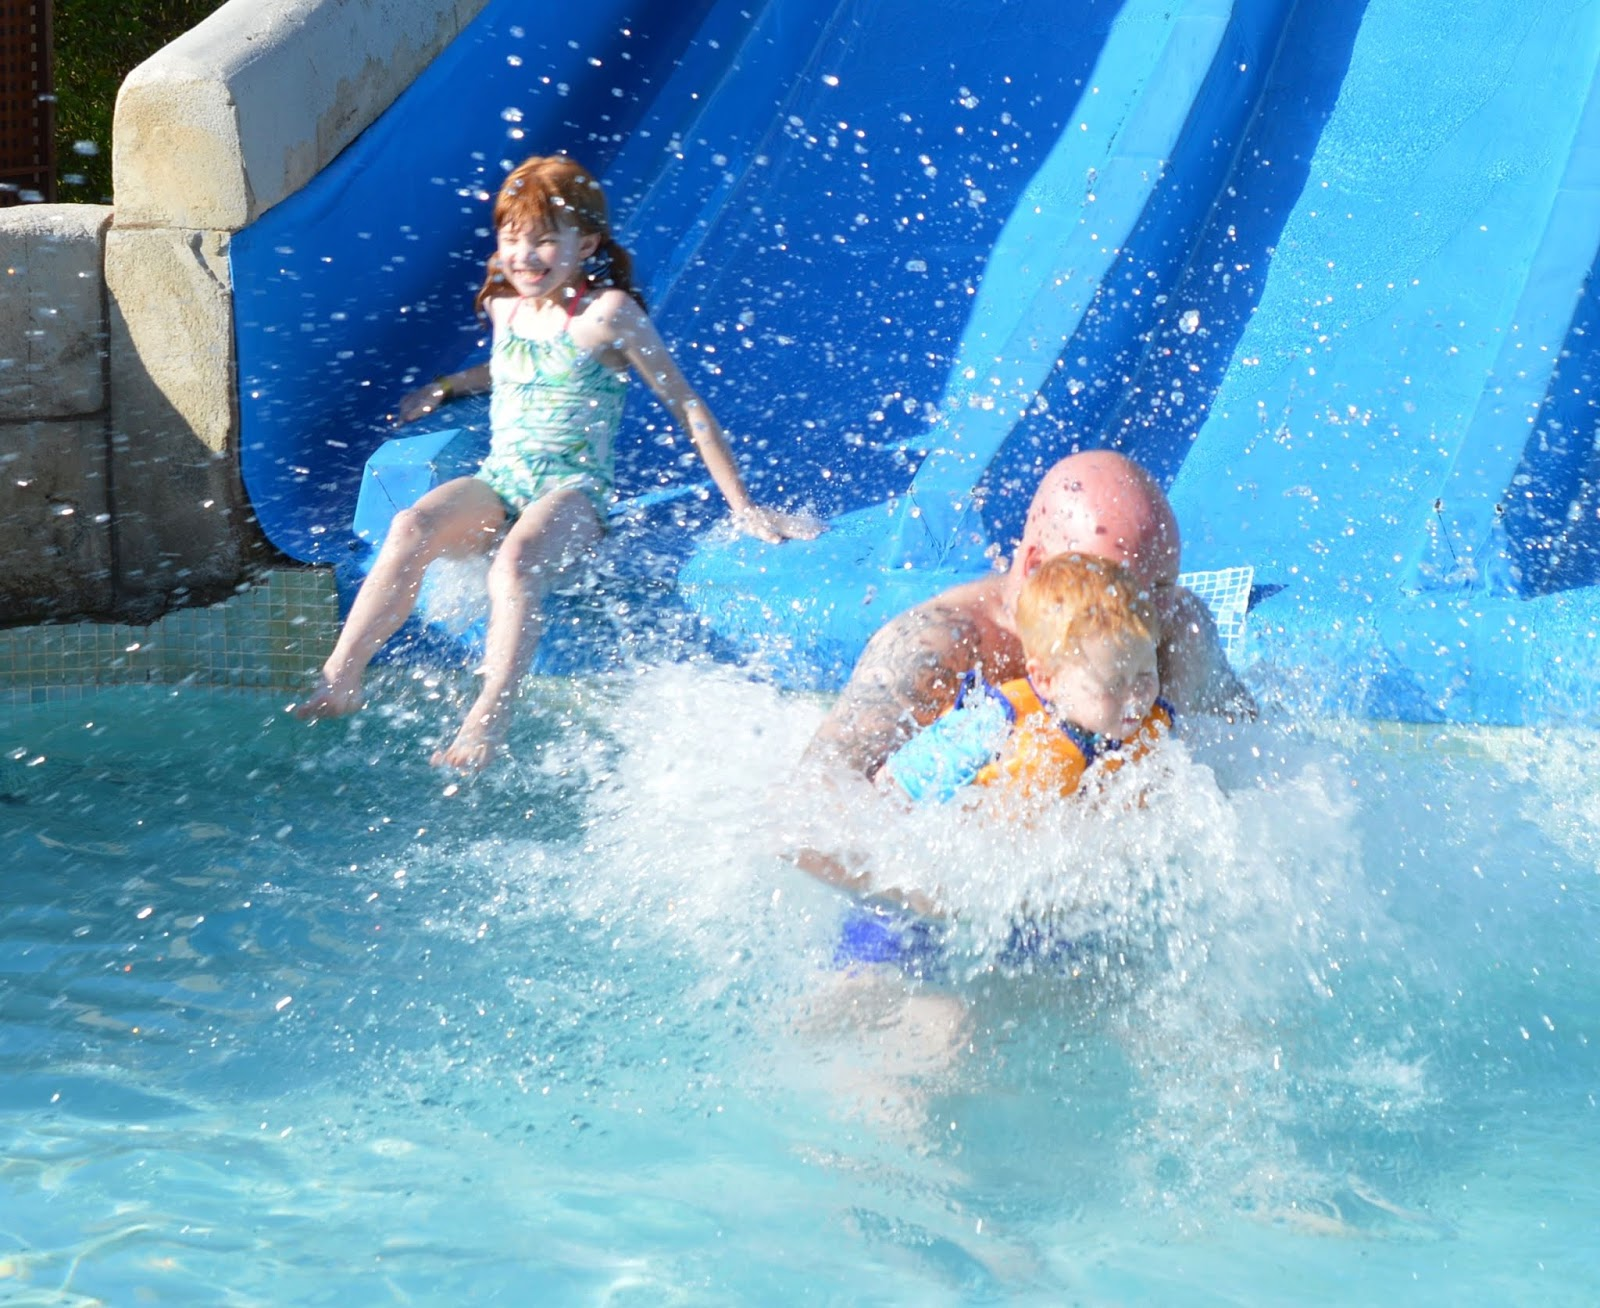 Pirate Swimming Pools and Mermaid Lessons at Pirates Village, Majorca - water slides